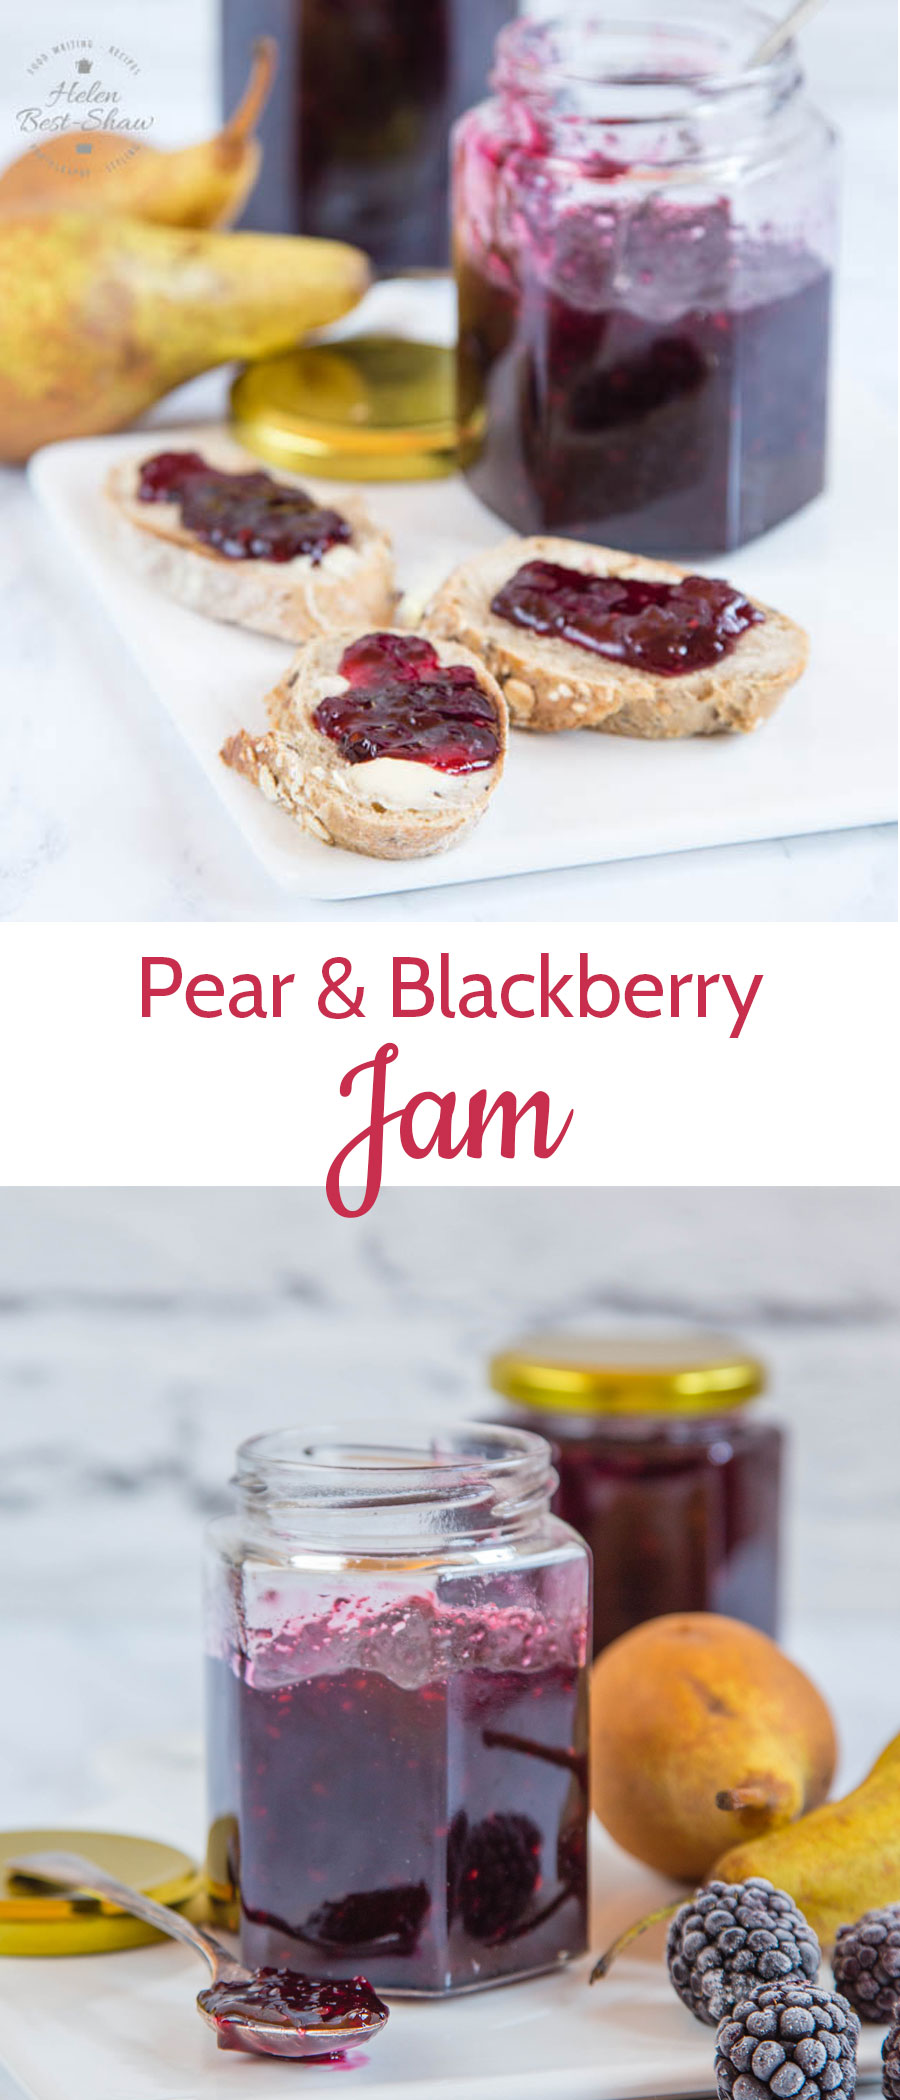 This easy recipe for pear and blackberry jam is an easy twist on the more usual blackberry and apple jam recipe. Small batch makes jam making easy as well as delicious! Three ingredient & no pectin.